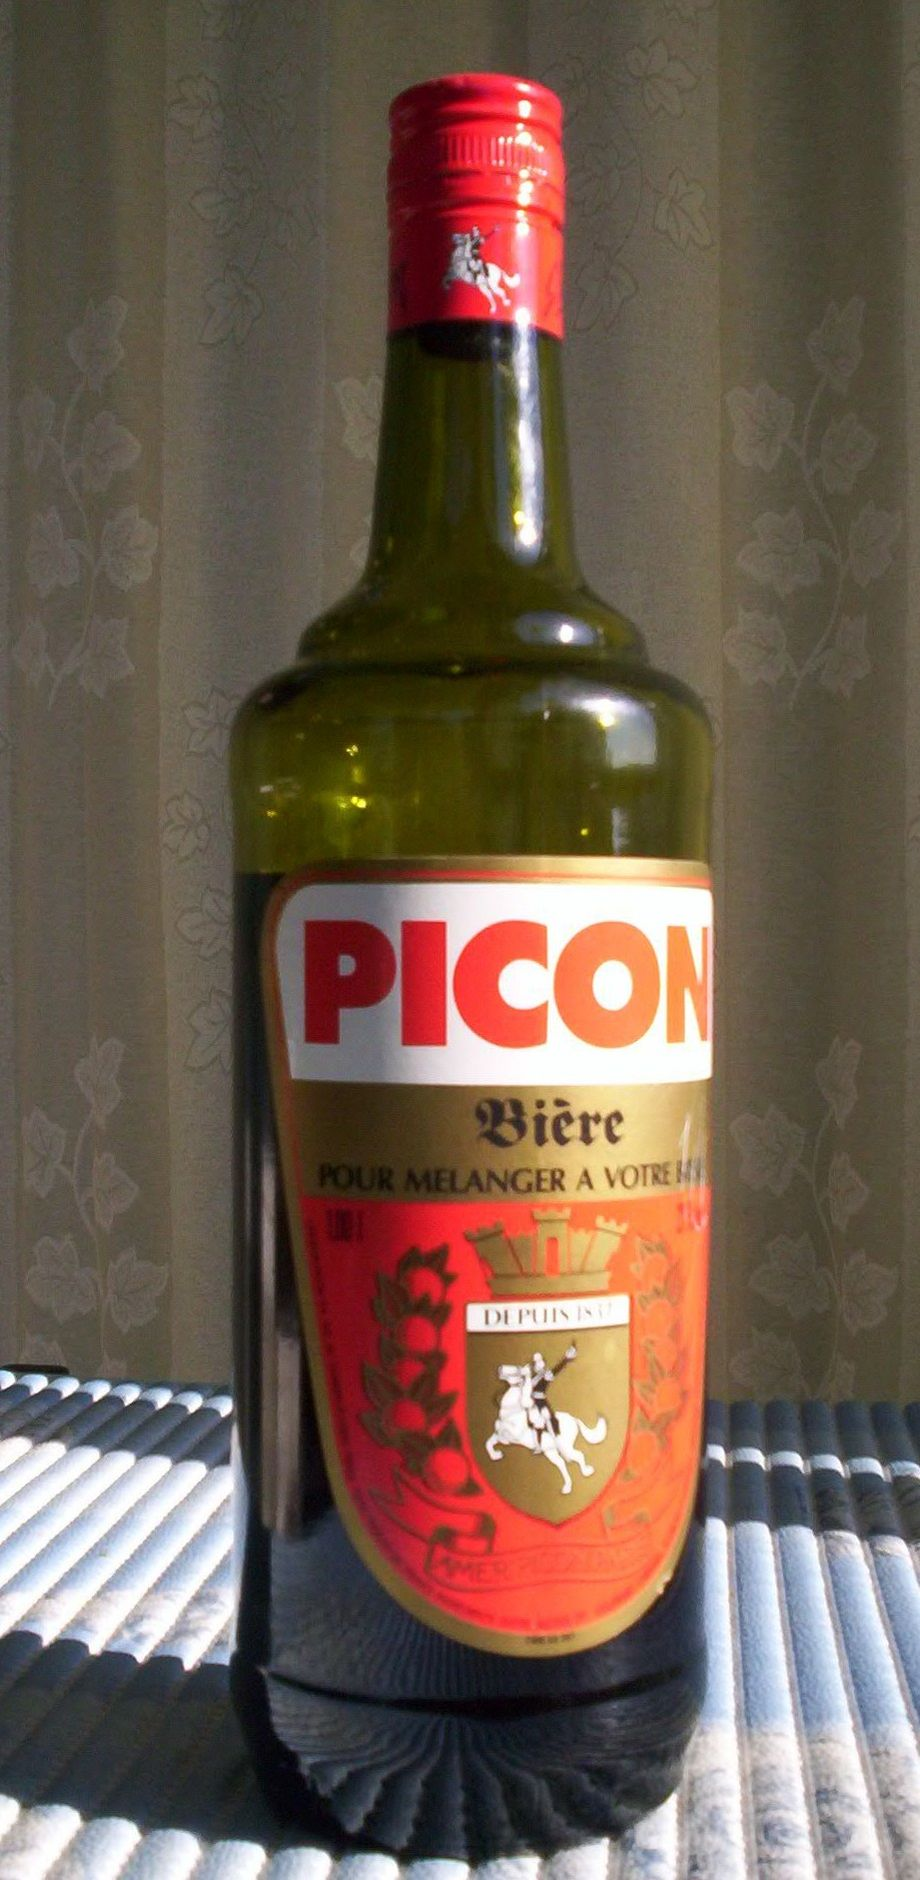 Picon (apéritif) - The complete information and online sale